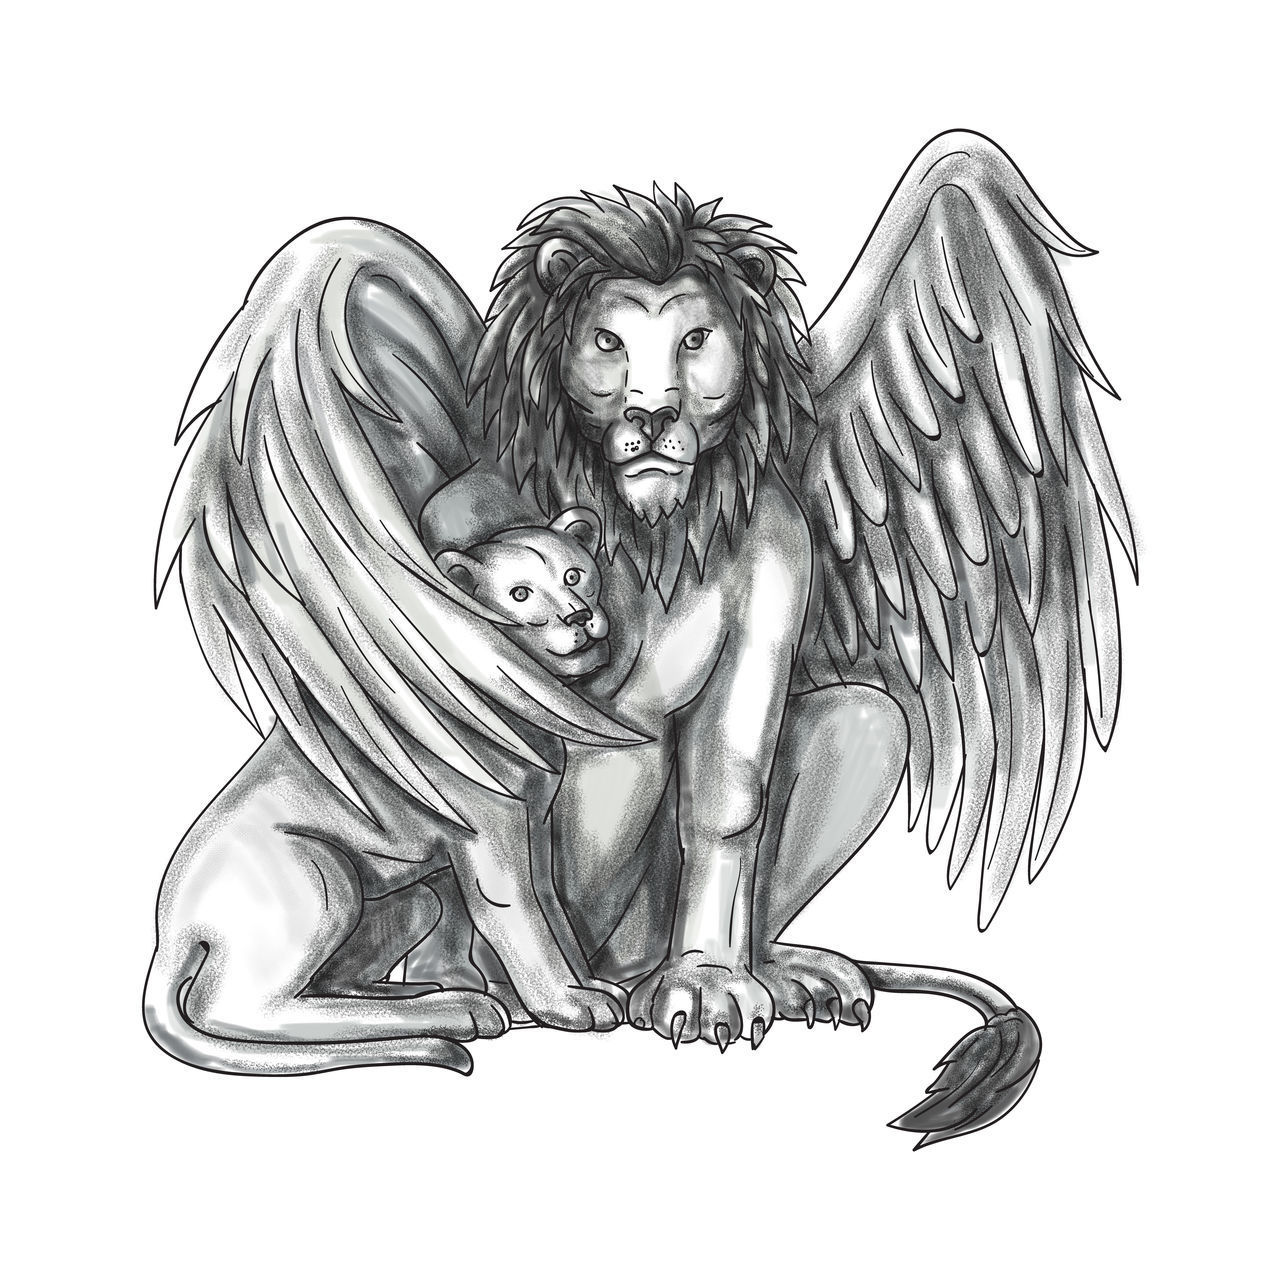 Tattoo style illustration of a winged lion, a mythological creature that resembles a lion with bird-like wings, protecting its cub by putting it under it's wing set on isolated white background viewed from front. Bird Like Wings Charcoal Cub Drawing Ink Lion Mythological Creature Sketch Tattoo Tattooing Traditional Tattoo White Background Winged Lion